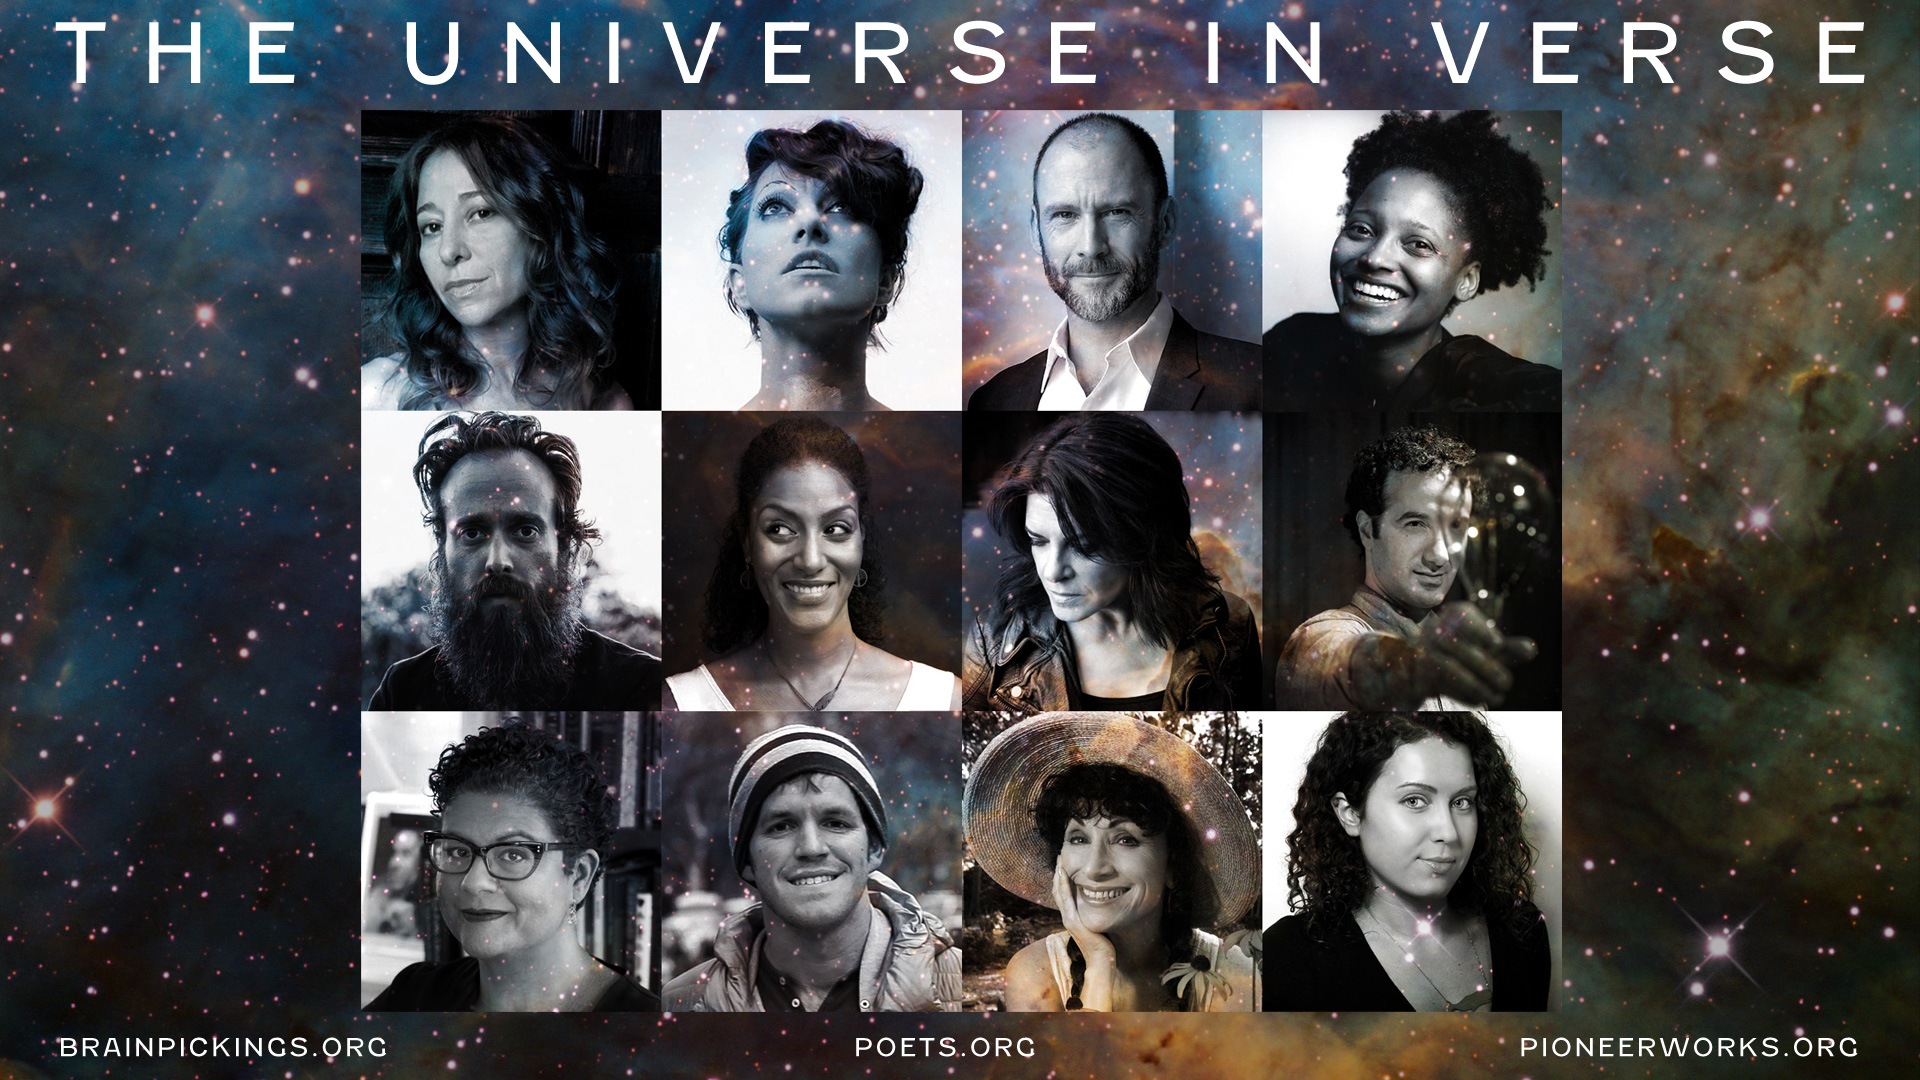 The Universe in Verse: Complete Show